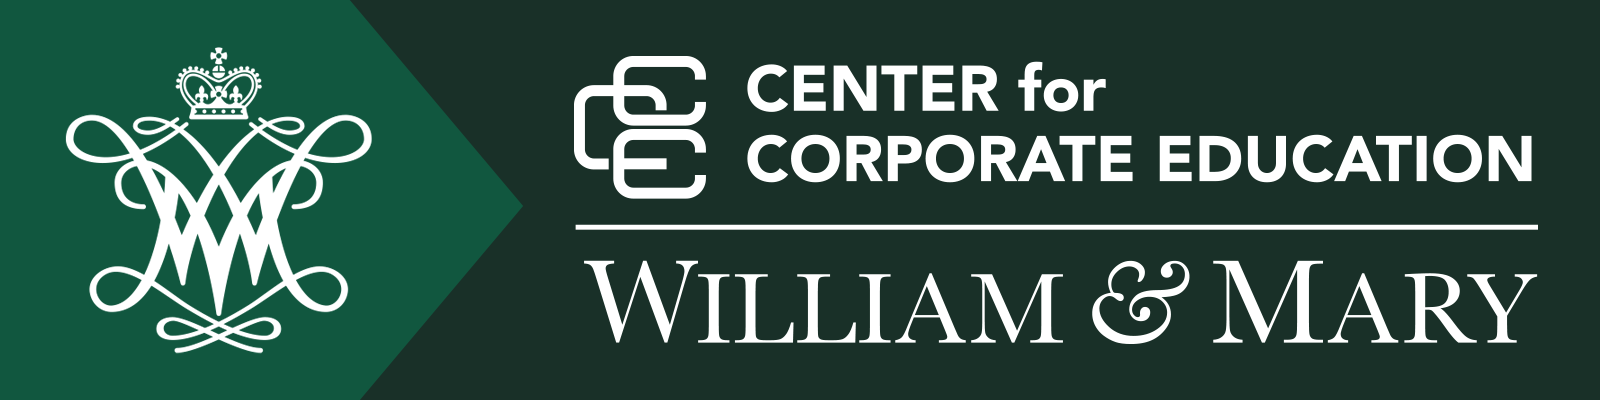 Center for Corporate Education William & Mary